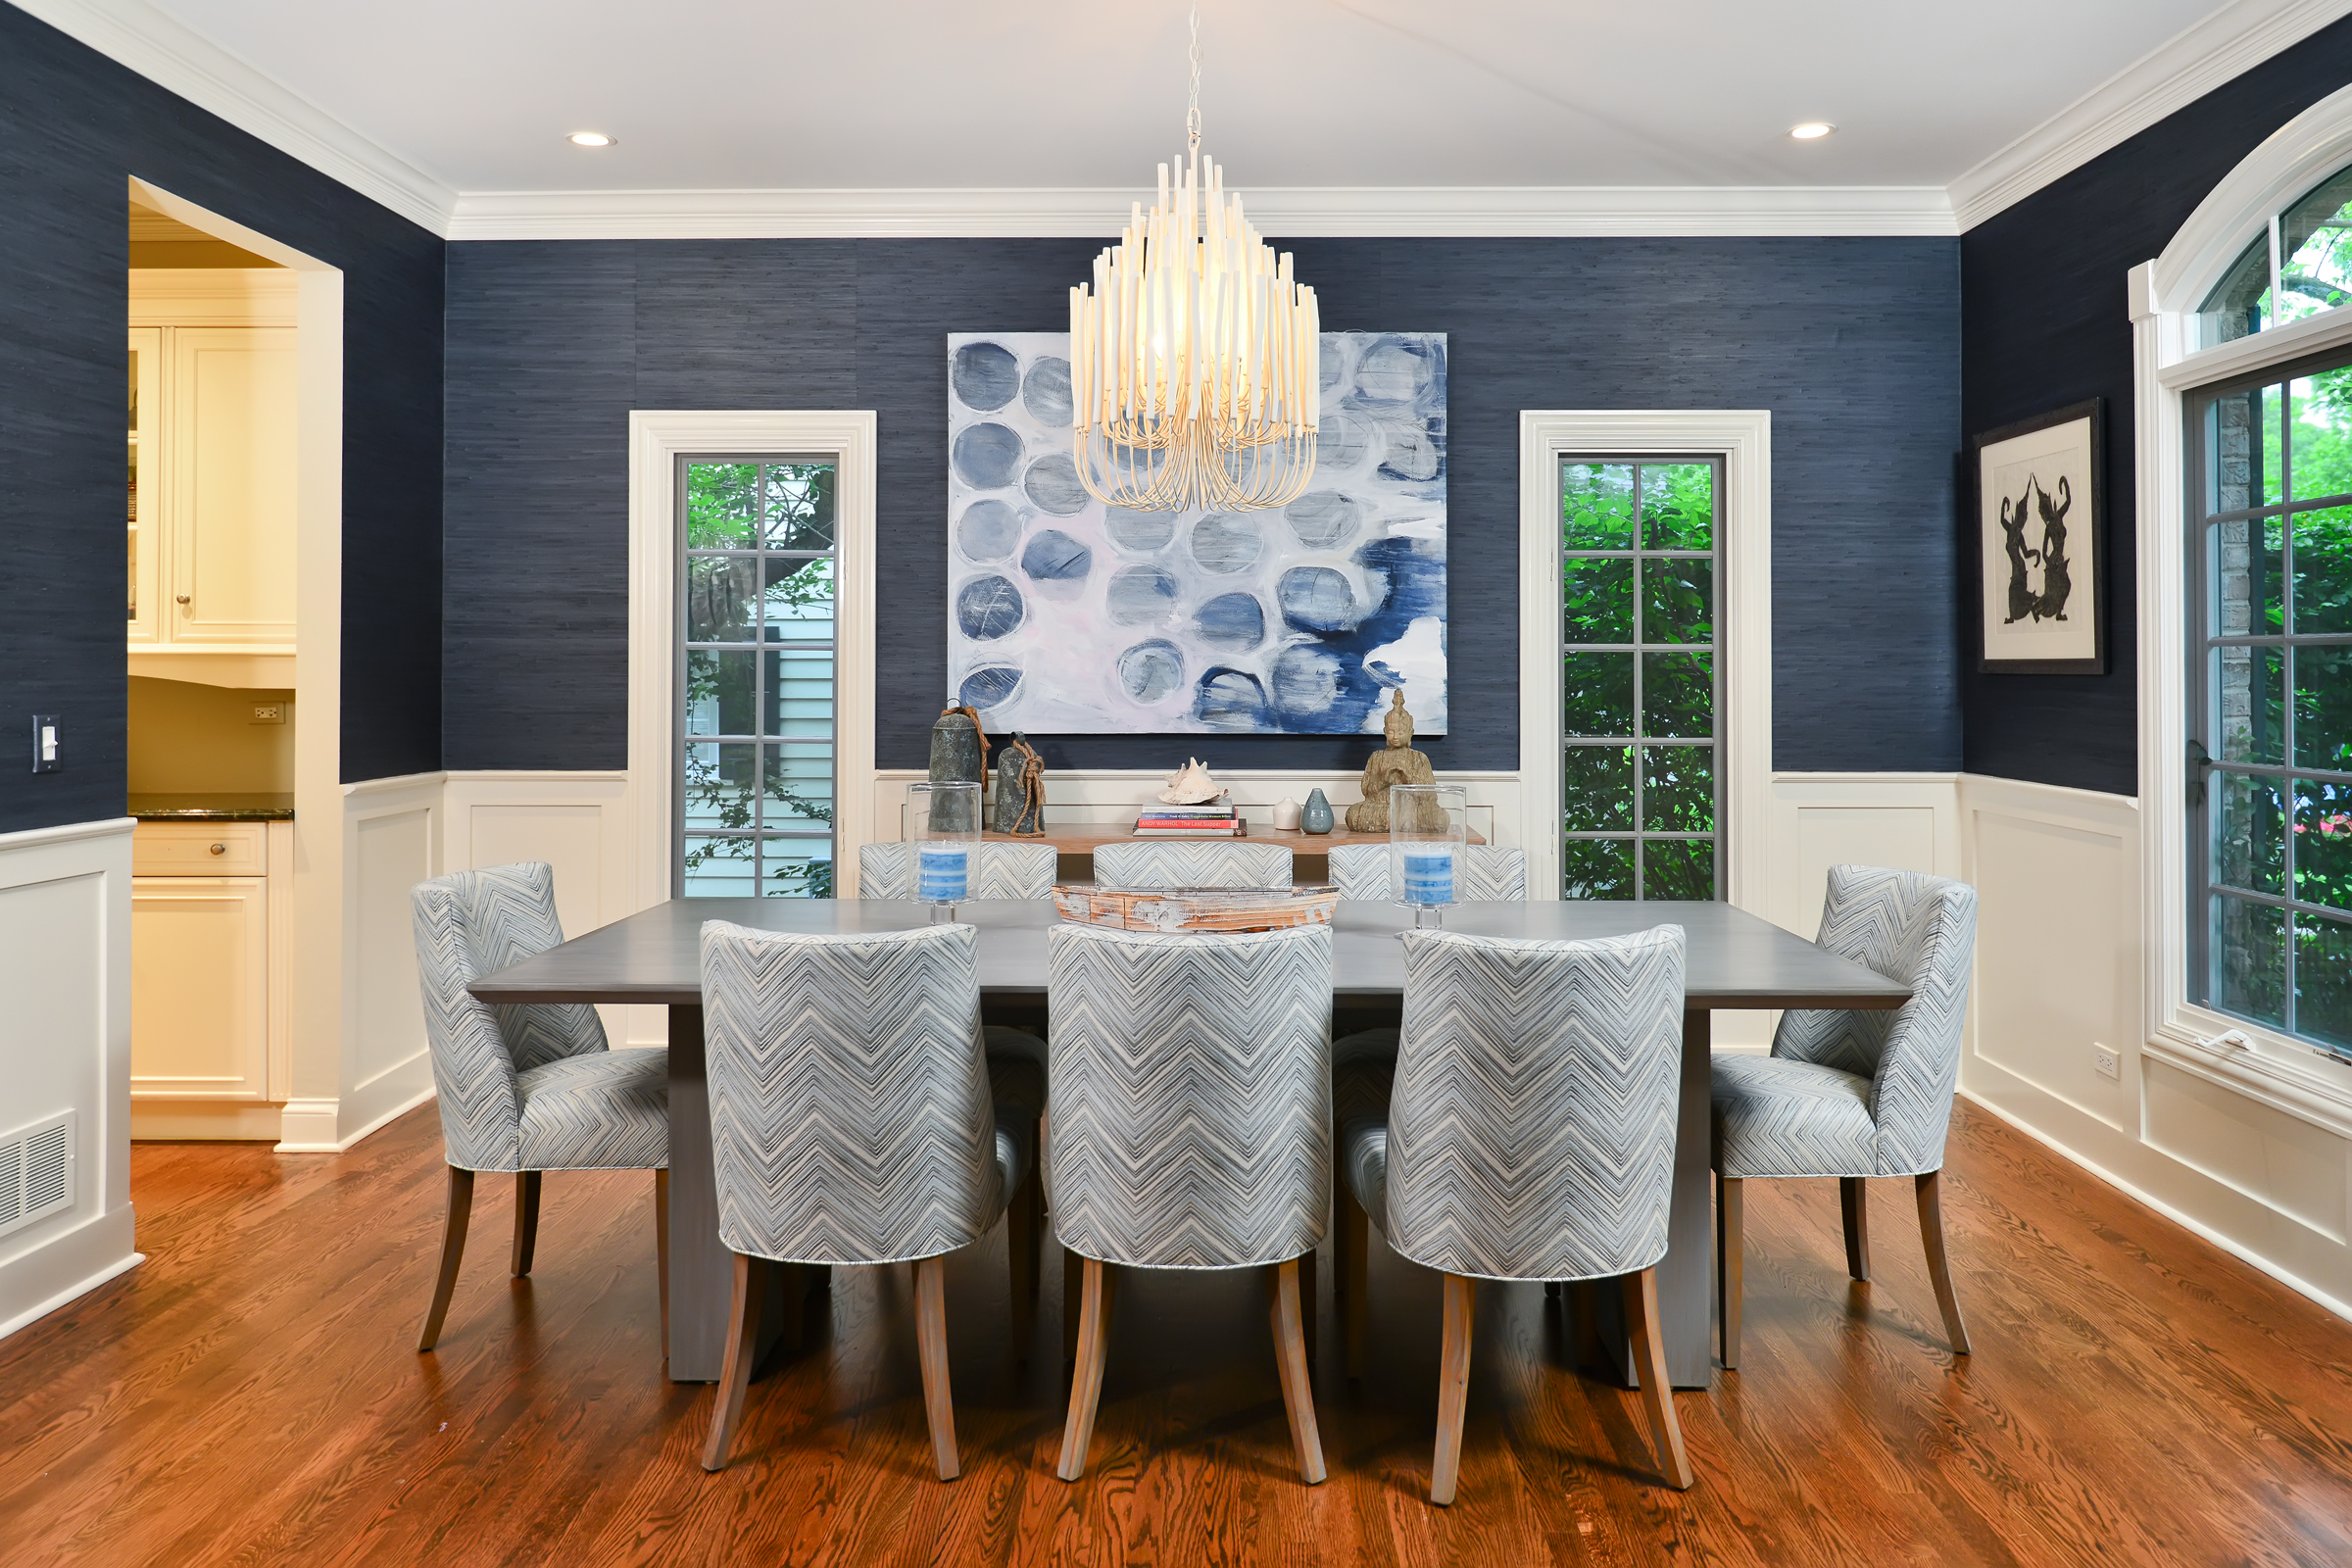 custom living room furniture designs in sri lanka designed lincthelendesign dining table and chairs